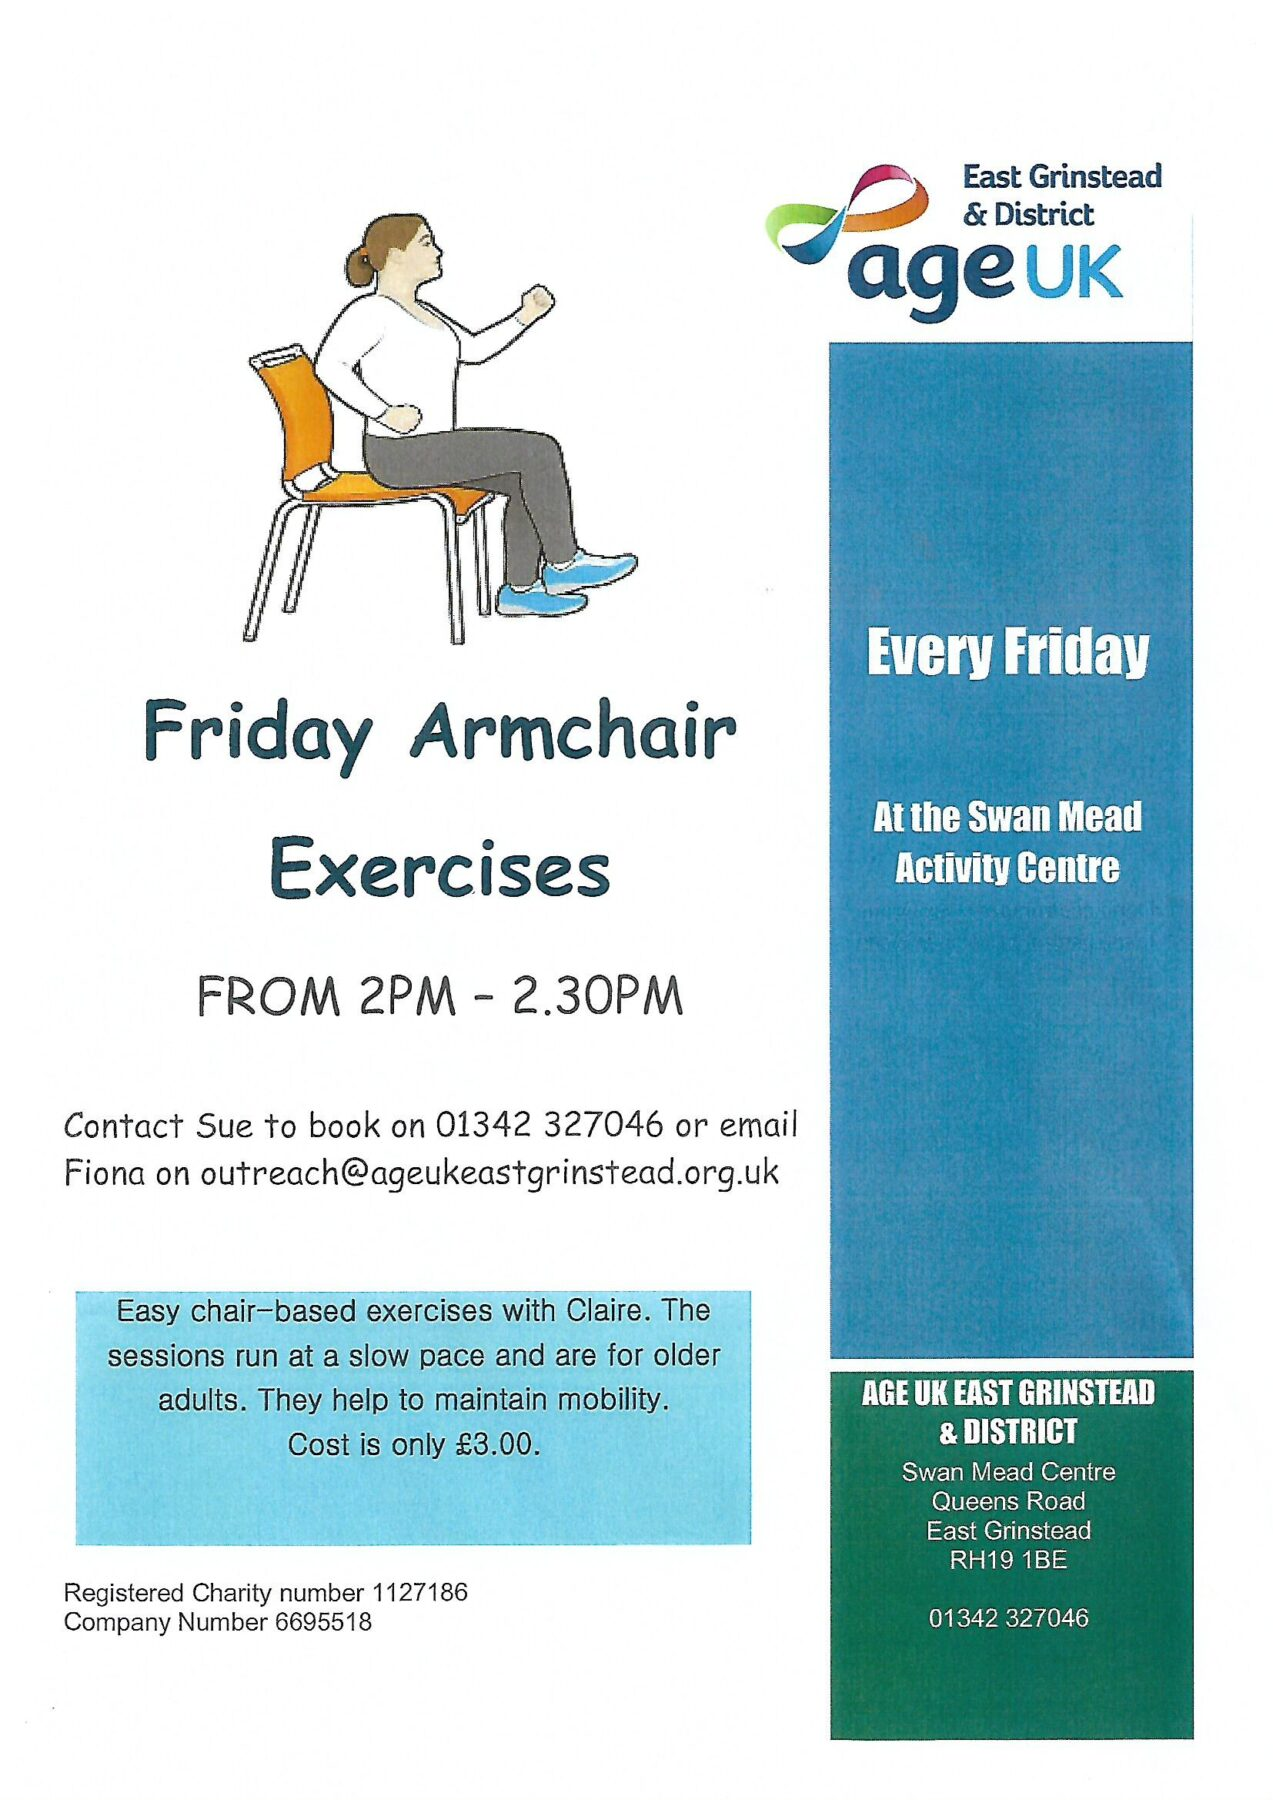 Friday Armchair Exercises with Age UK